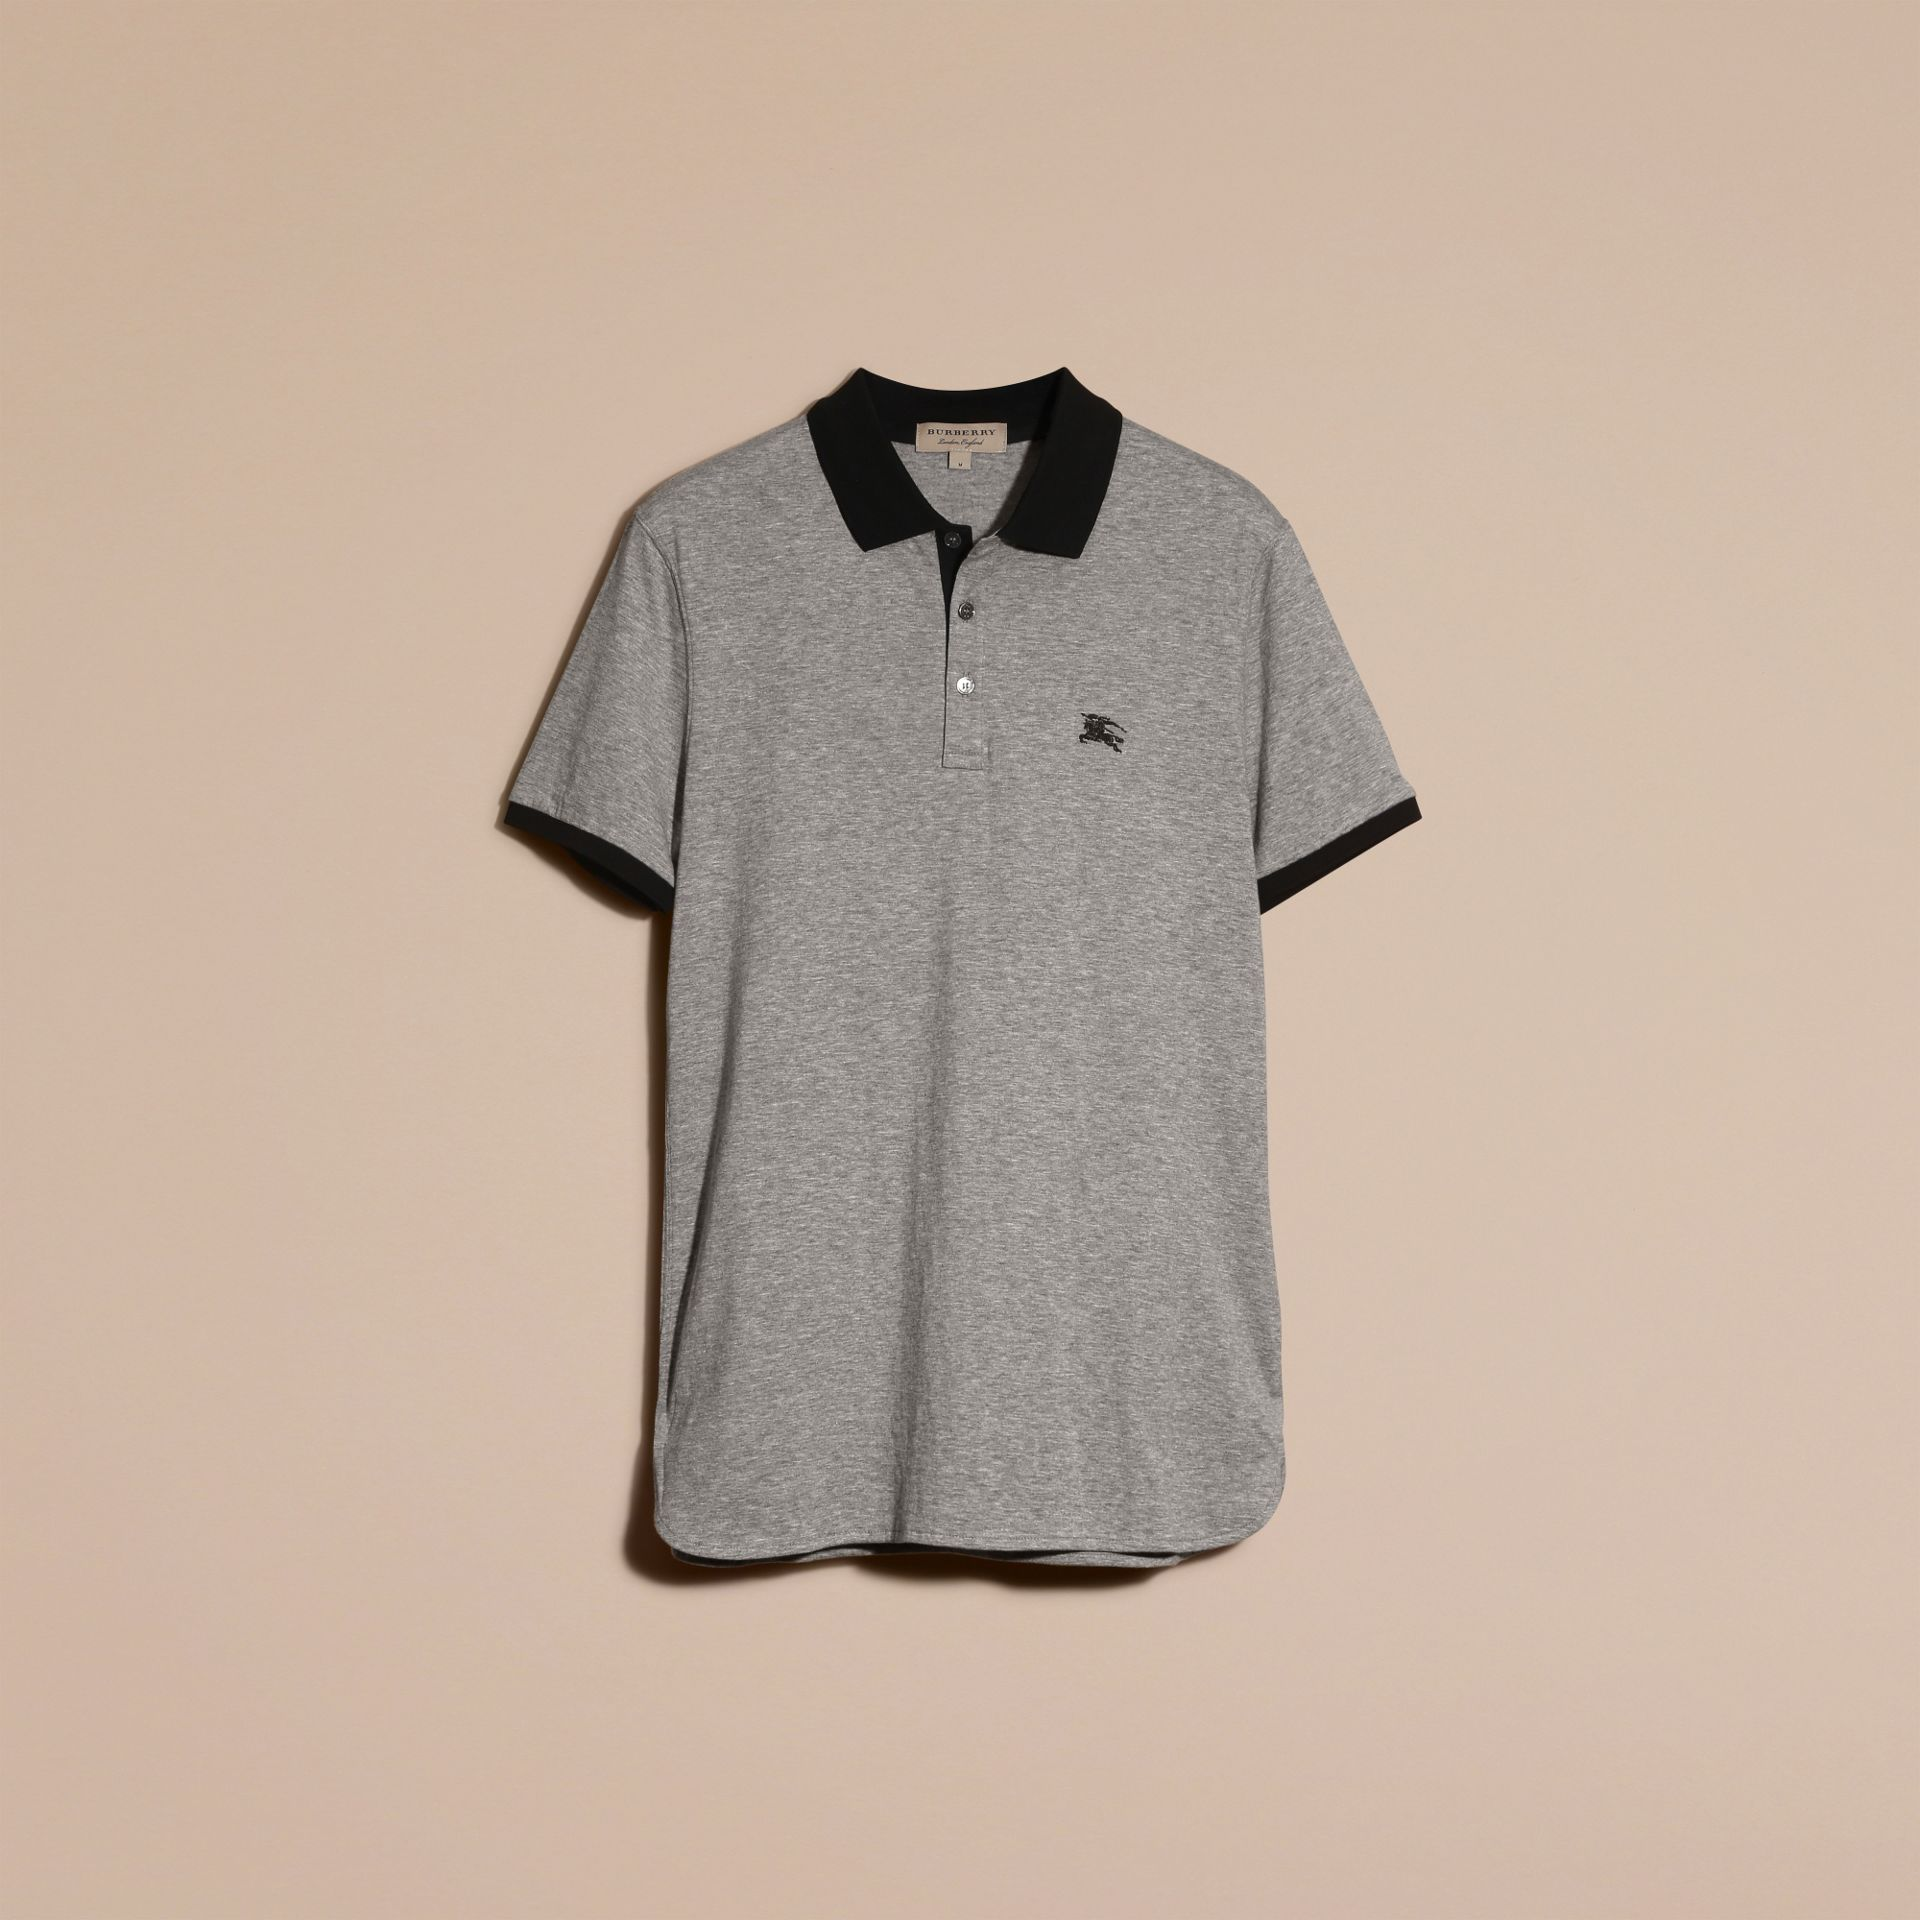 Mid grey melange Fitted Cotton Polo Shirt with Tonal Trim Mid Grey Melange - gallery image 4